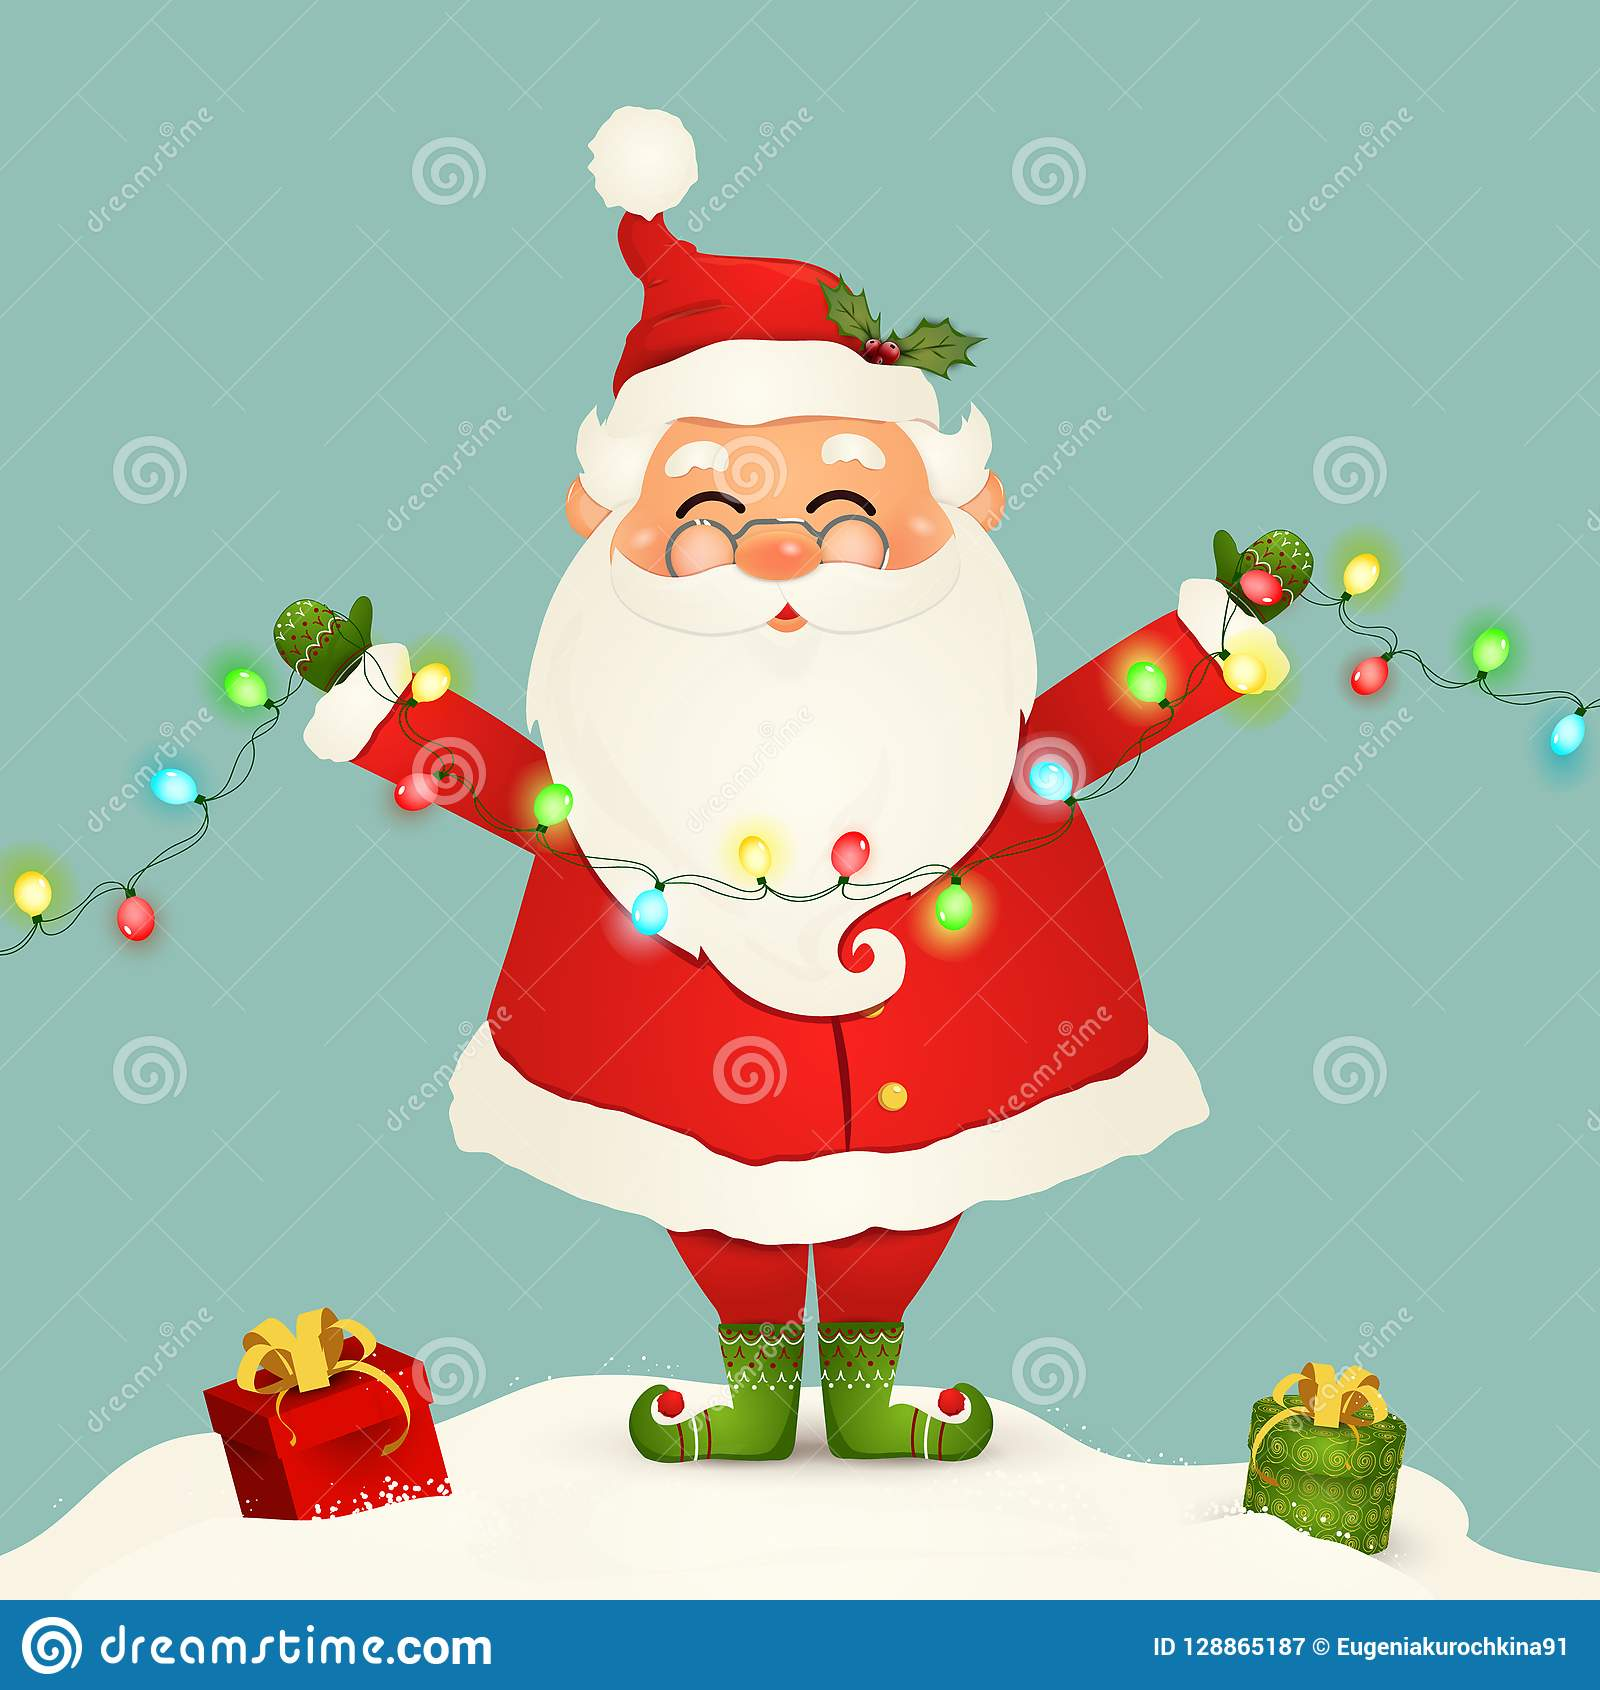 Cute Santa Claus Standing In Snow Holding Christmas Lights